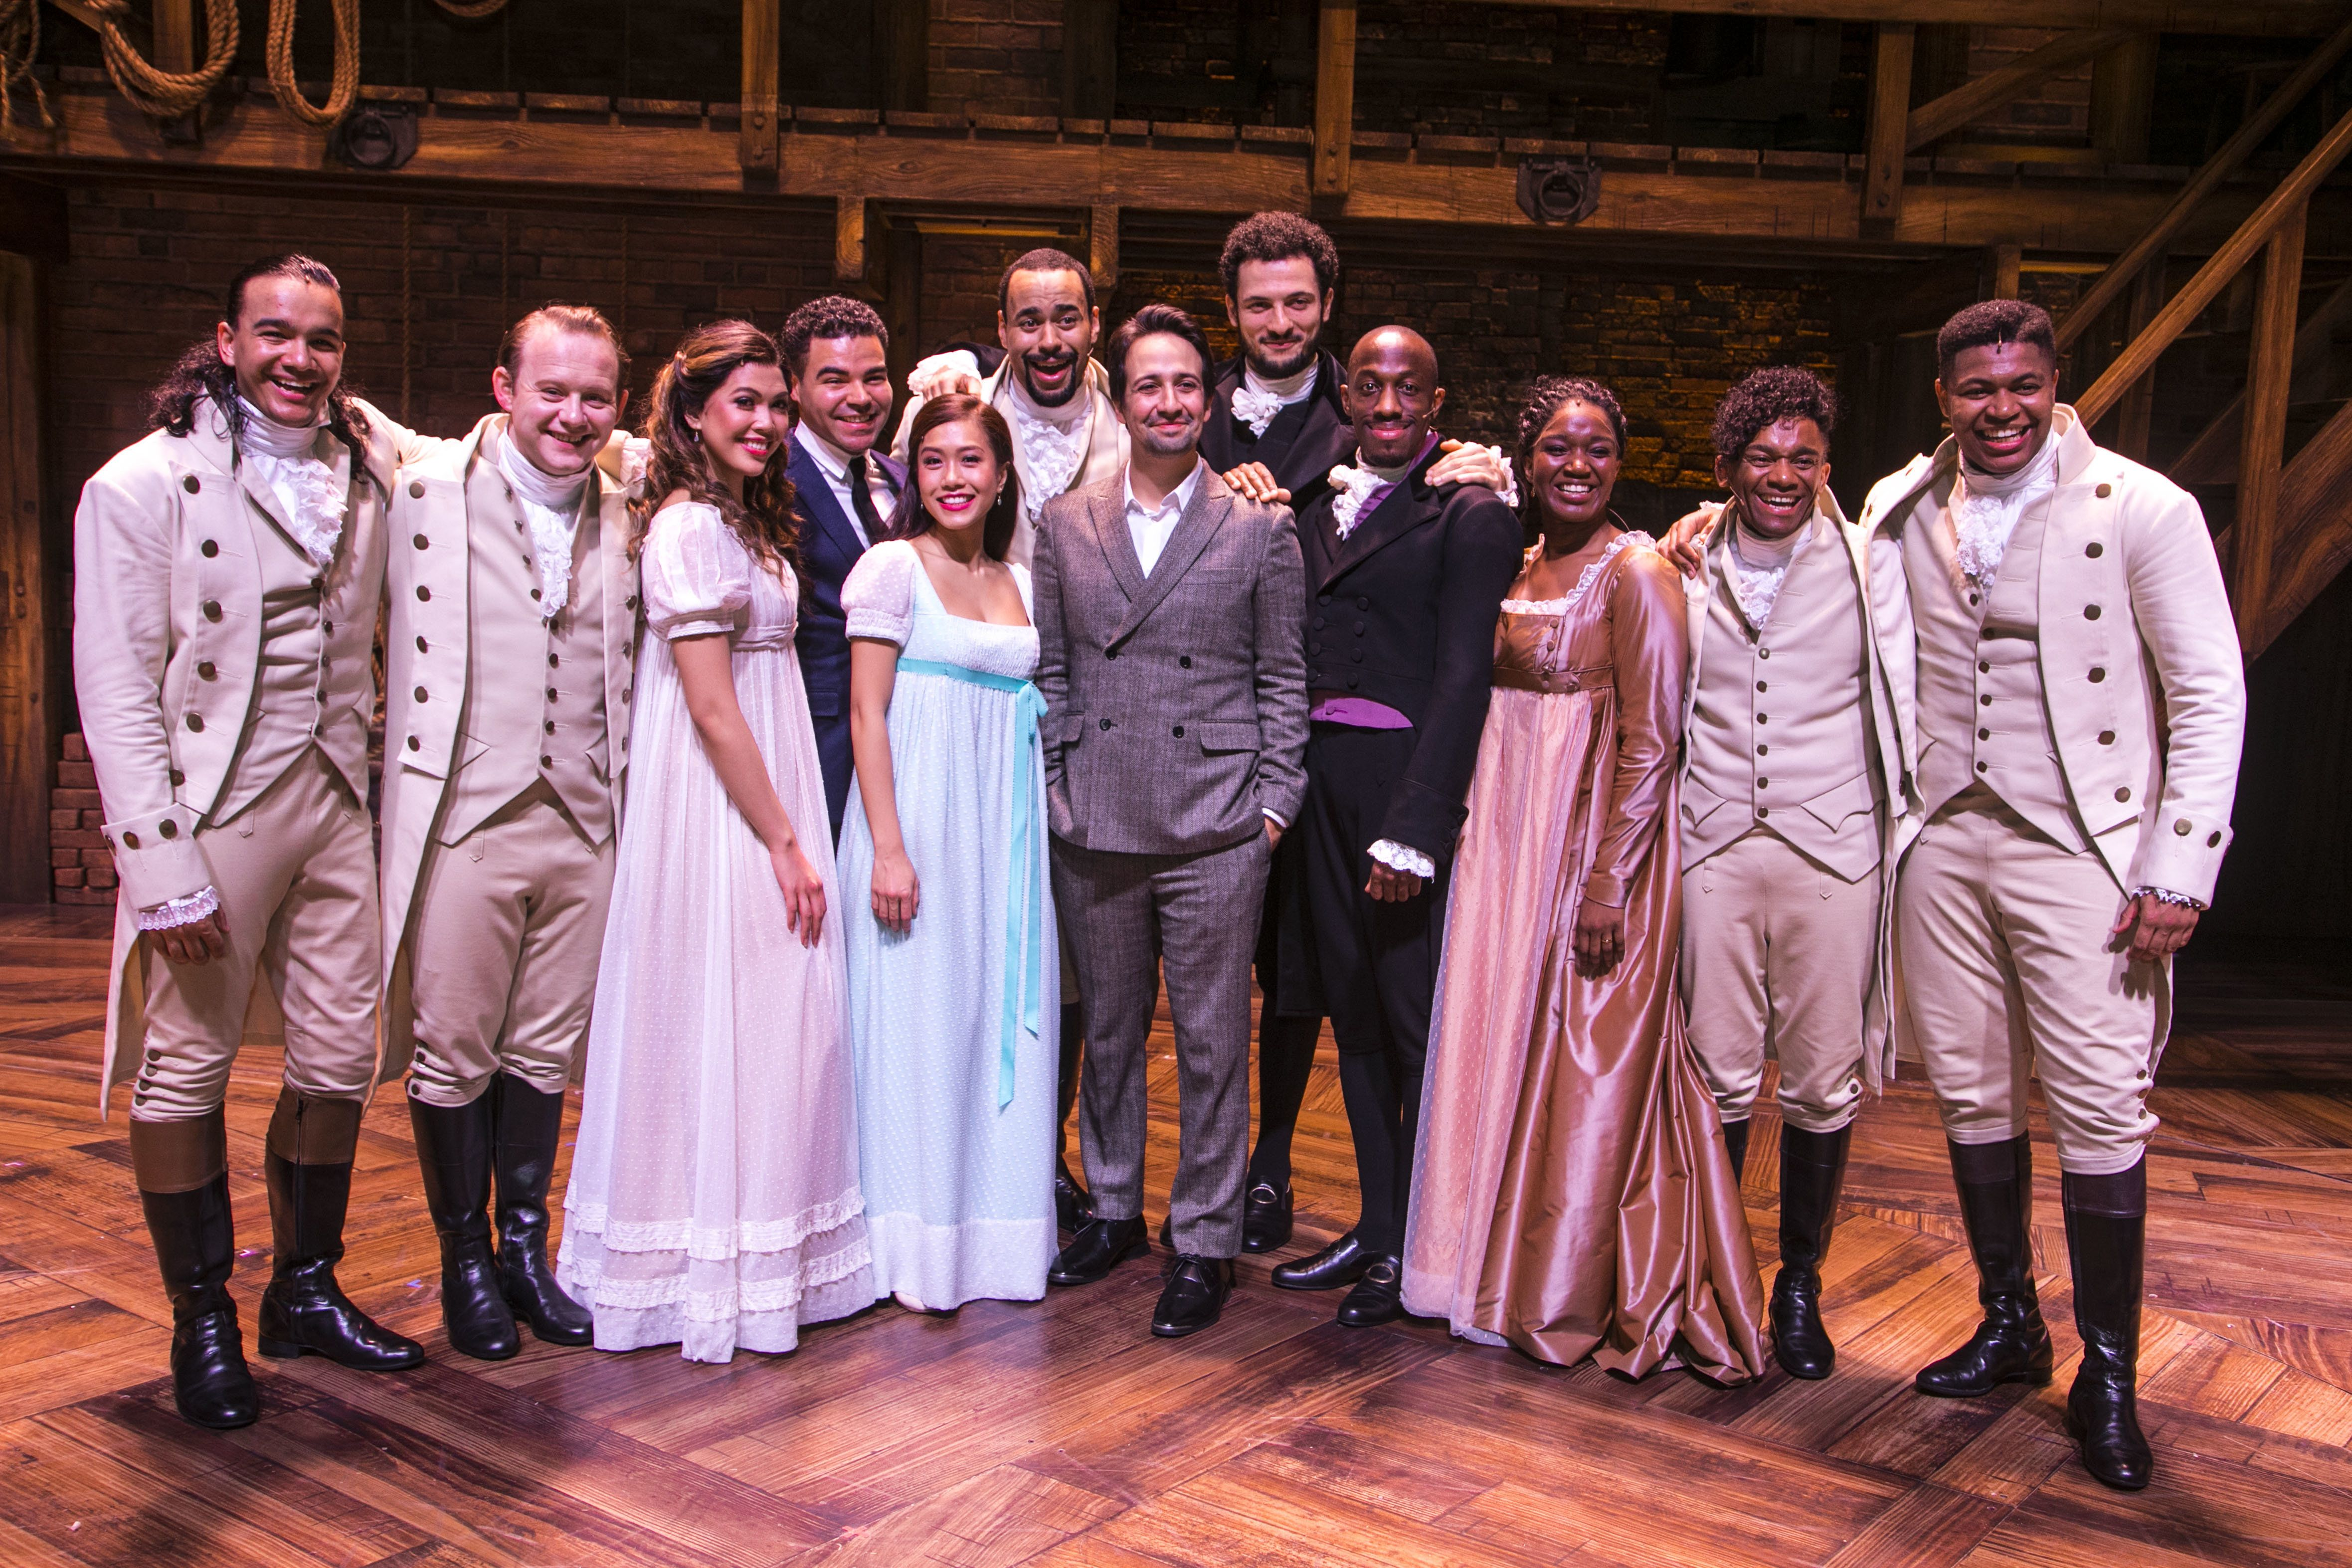 The 'Hamilton' Reviews Are Out, And The West End's New Arrival Sounds Totally